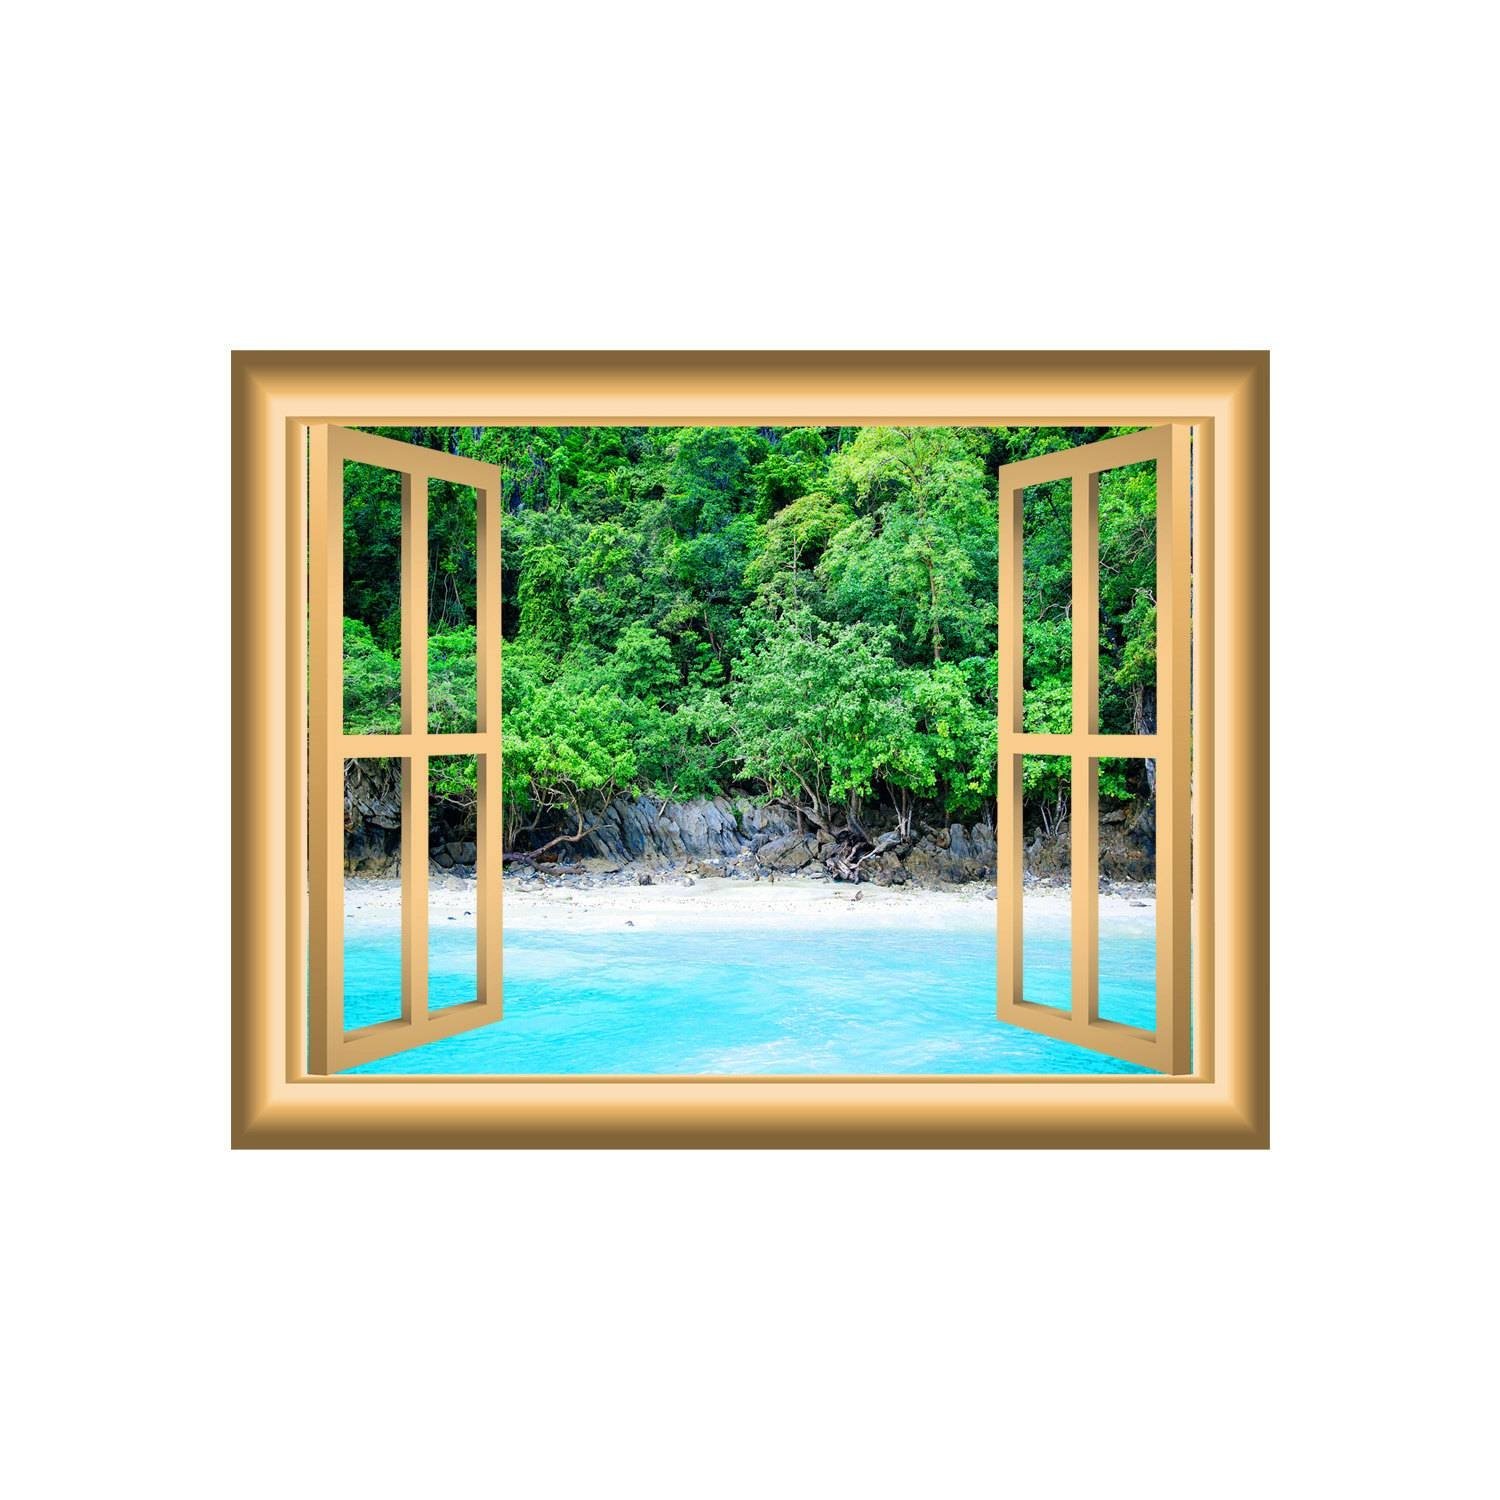 3d Wall Art Beach Scenery Decal Ocean And Trees Window Frame Regarding Best And Newest Beach 3d Wall Art (View 12 of 20)